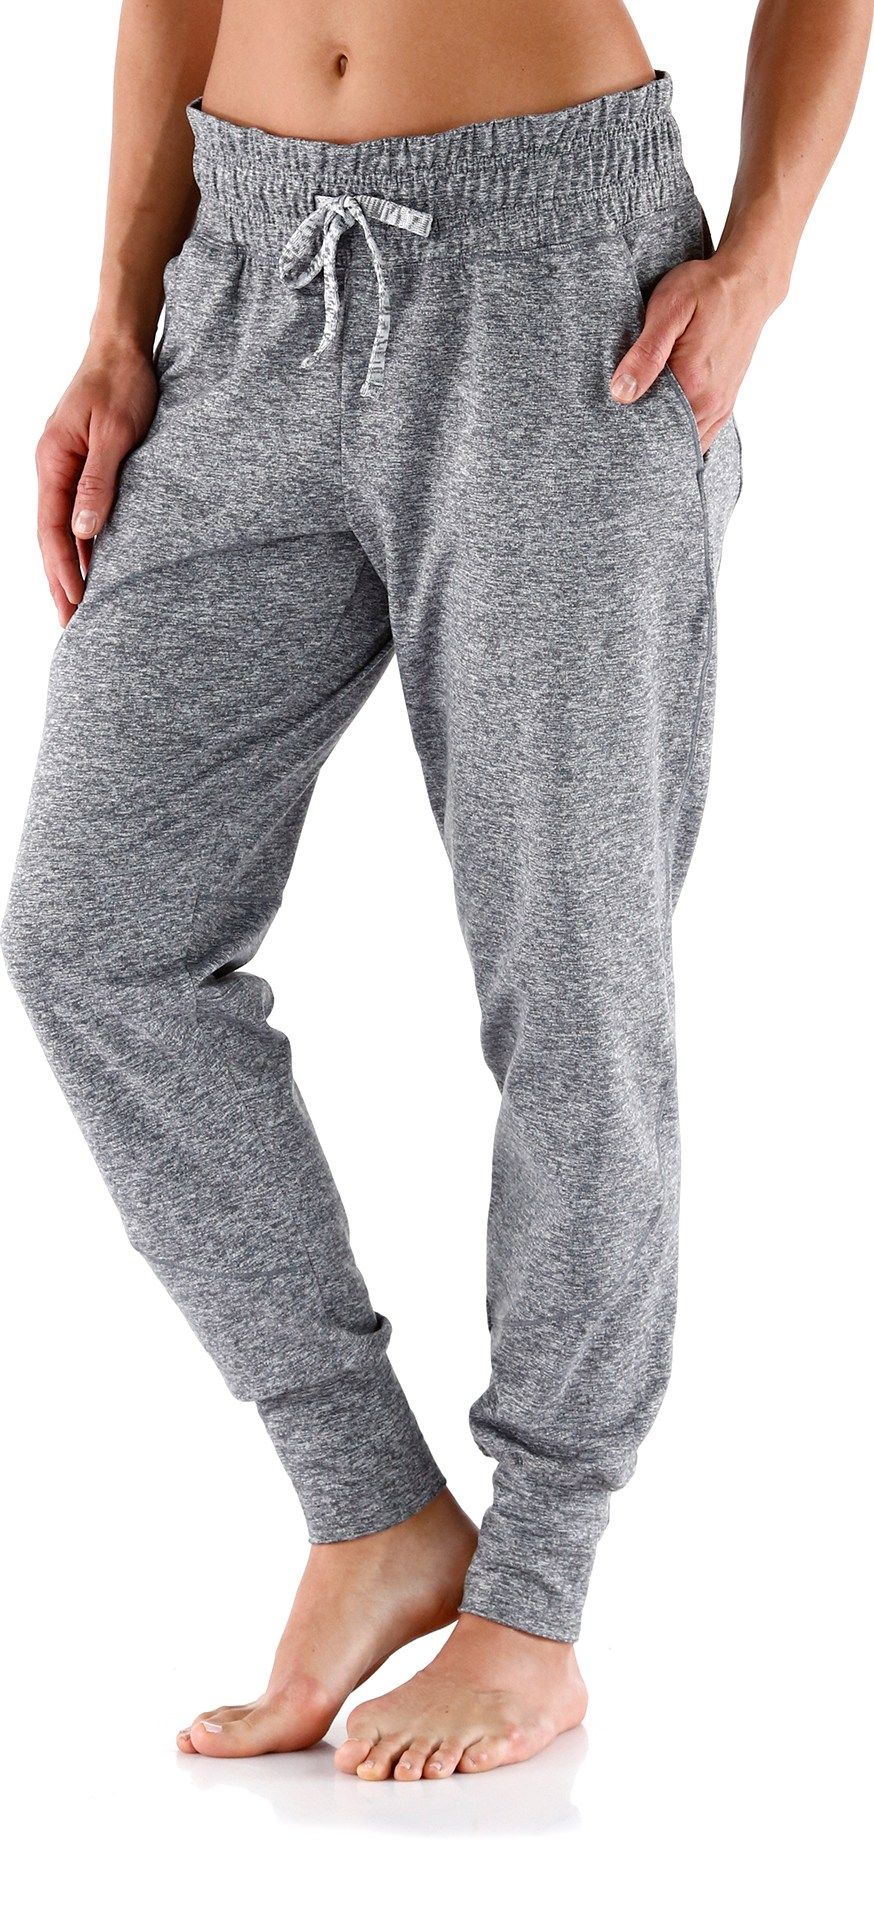 these are the best pants ever!! comes in reg and petite. rei tech